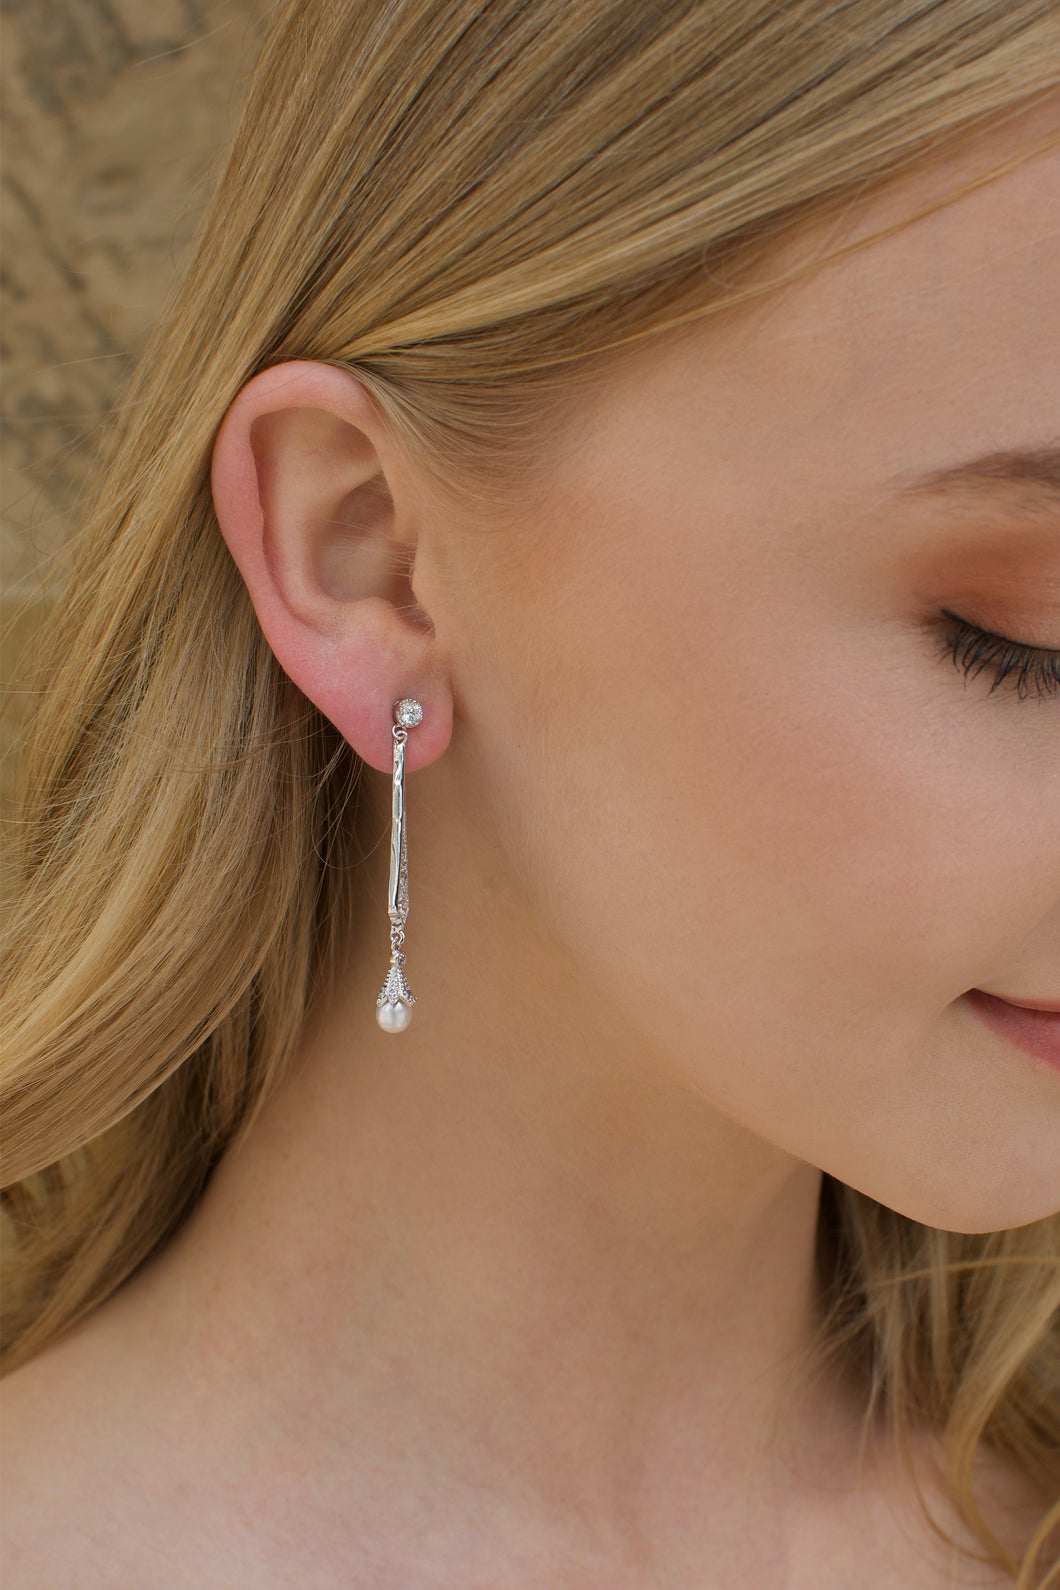 A long silver bridal earring with a hanging pearl worn by a blonde model